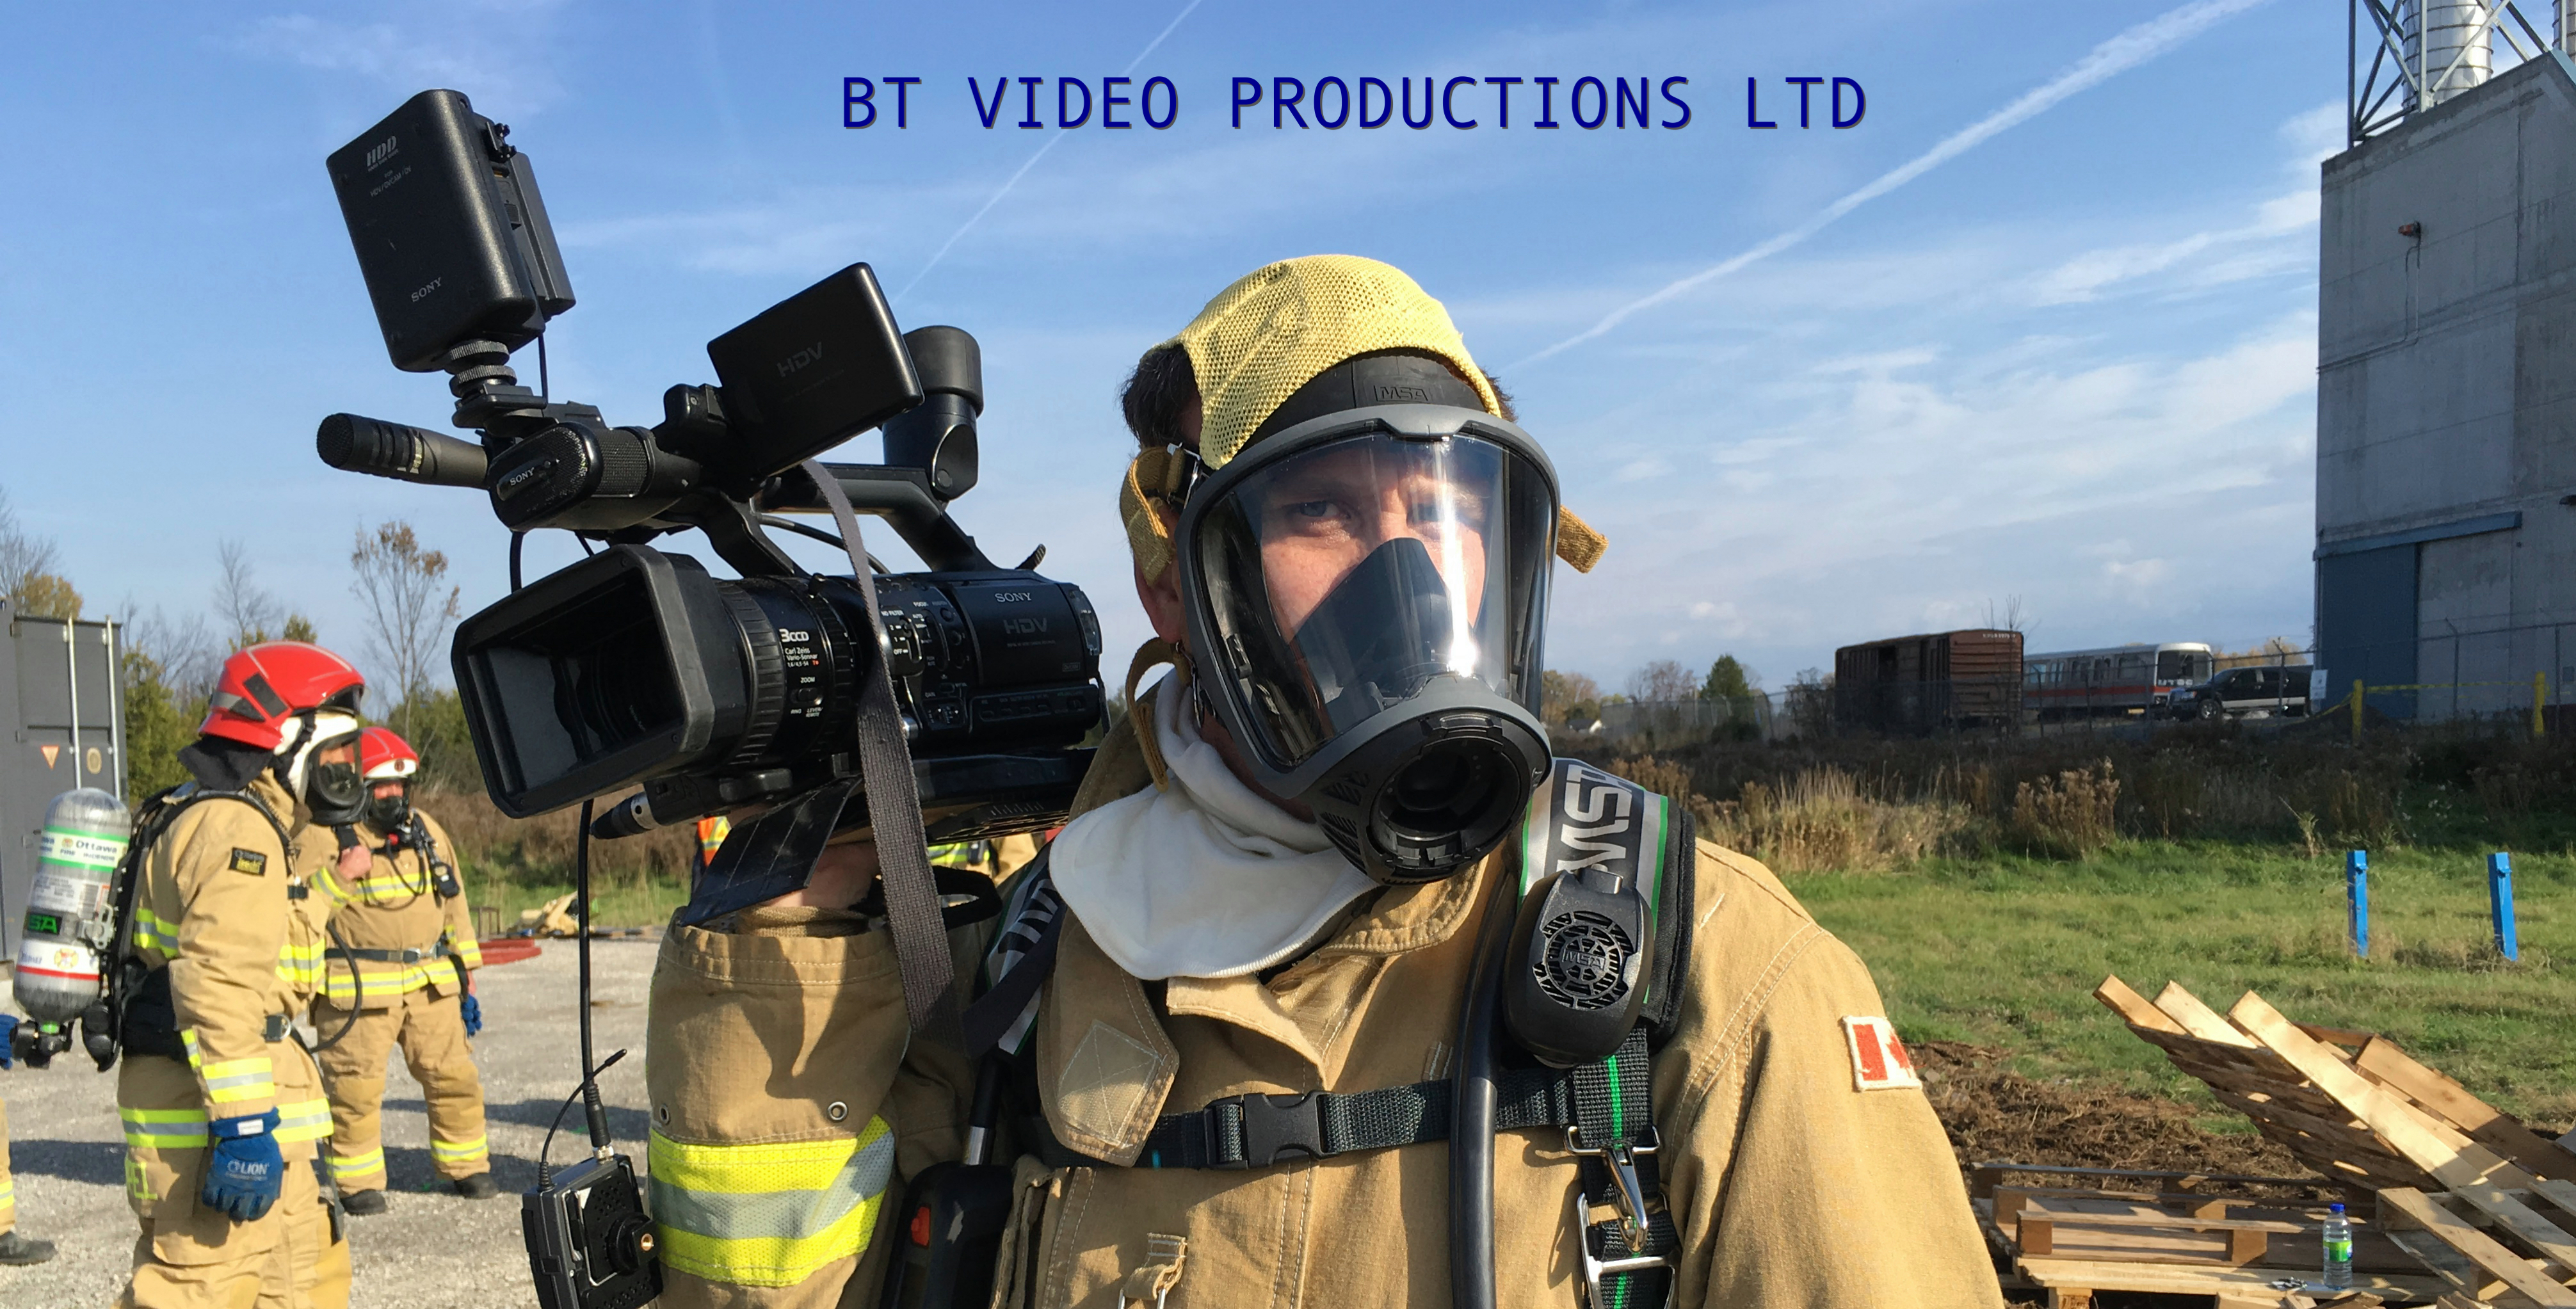 A firefighter in full gear with a video camera